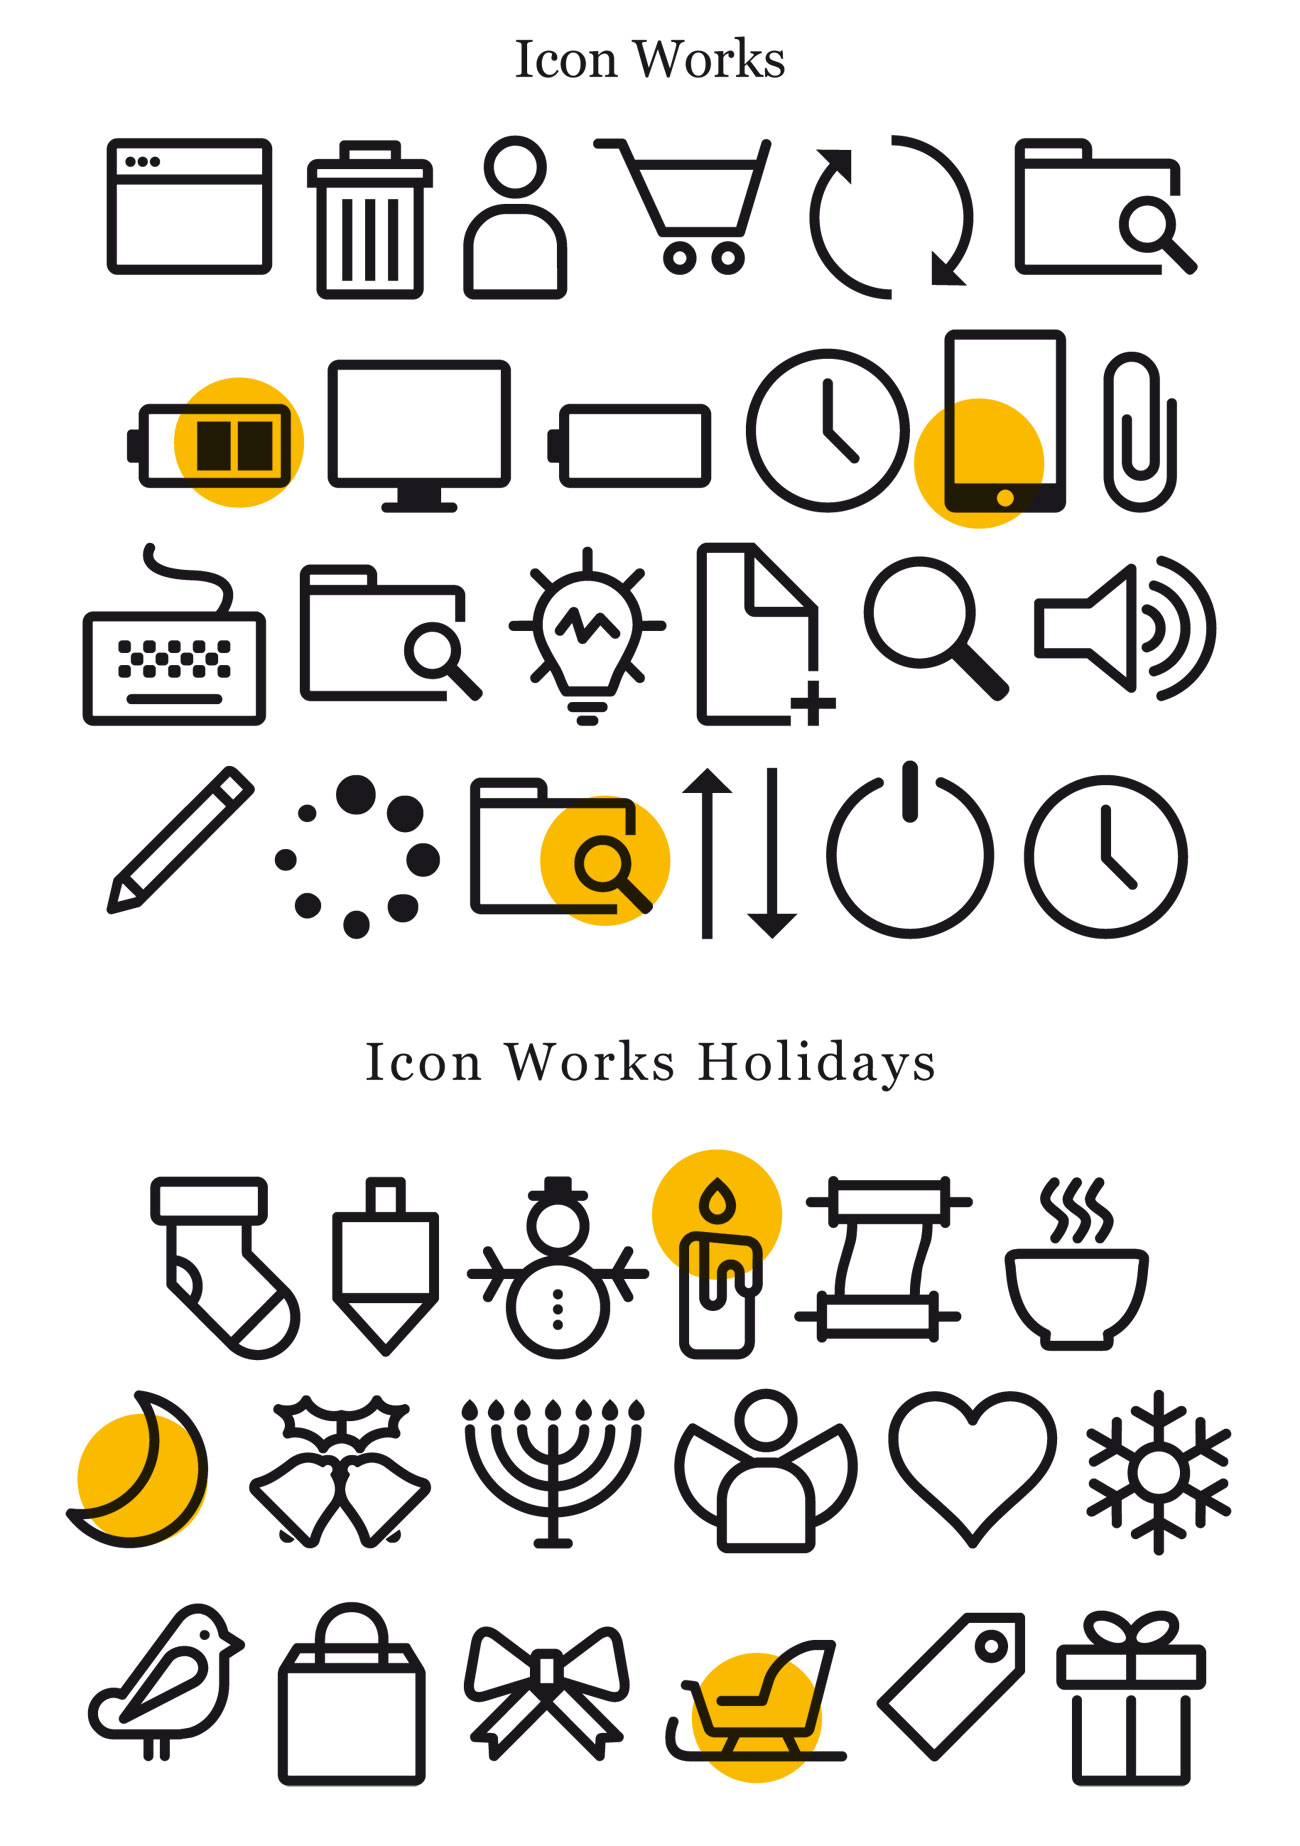 TY_150407_Freefont_IconWorks_02